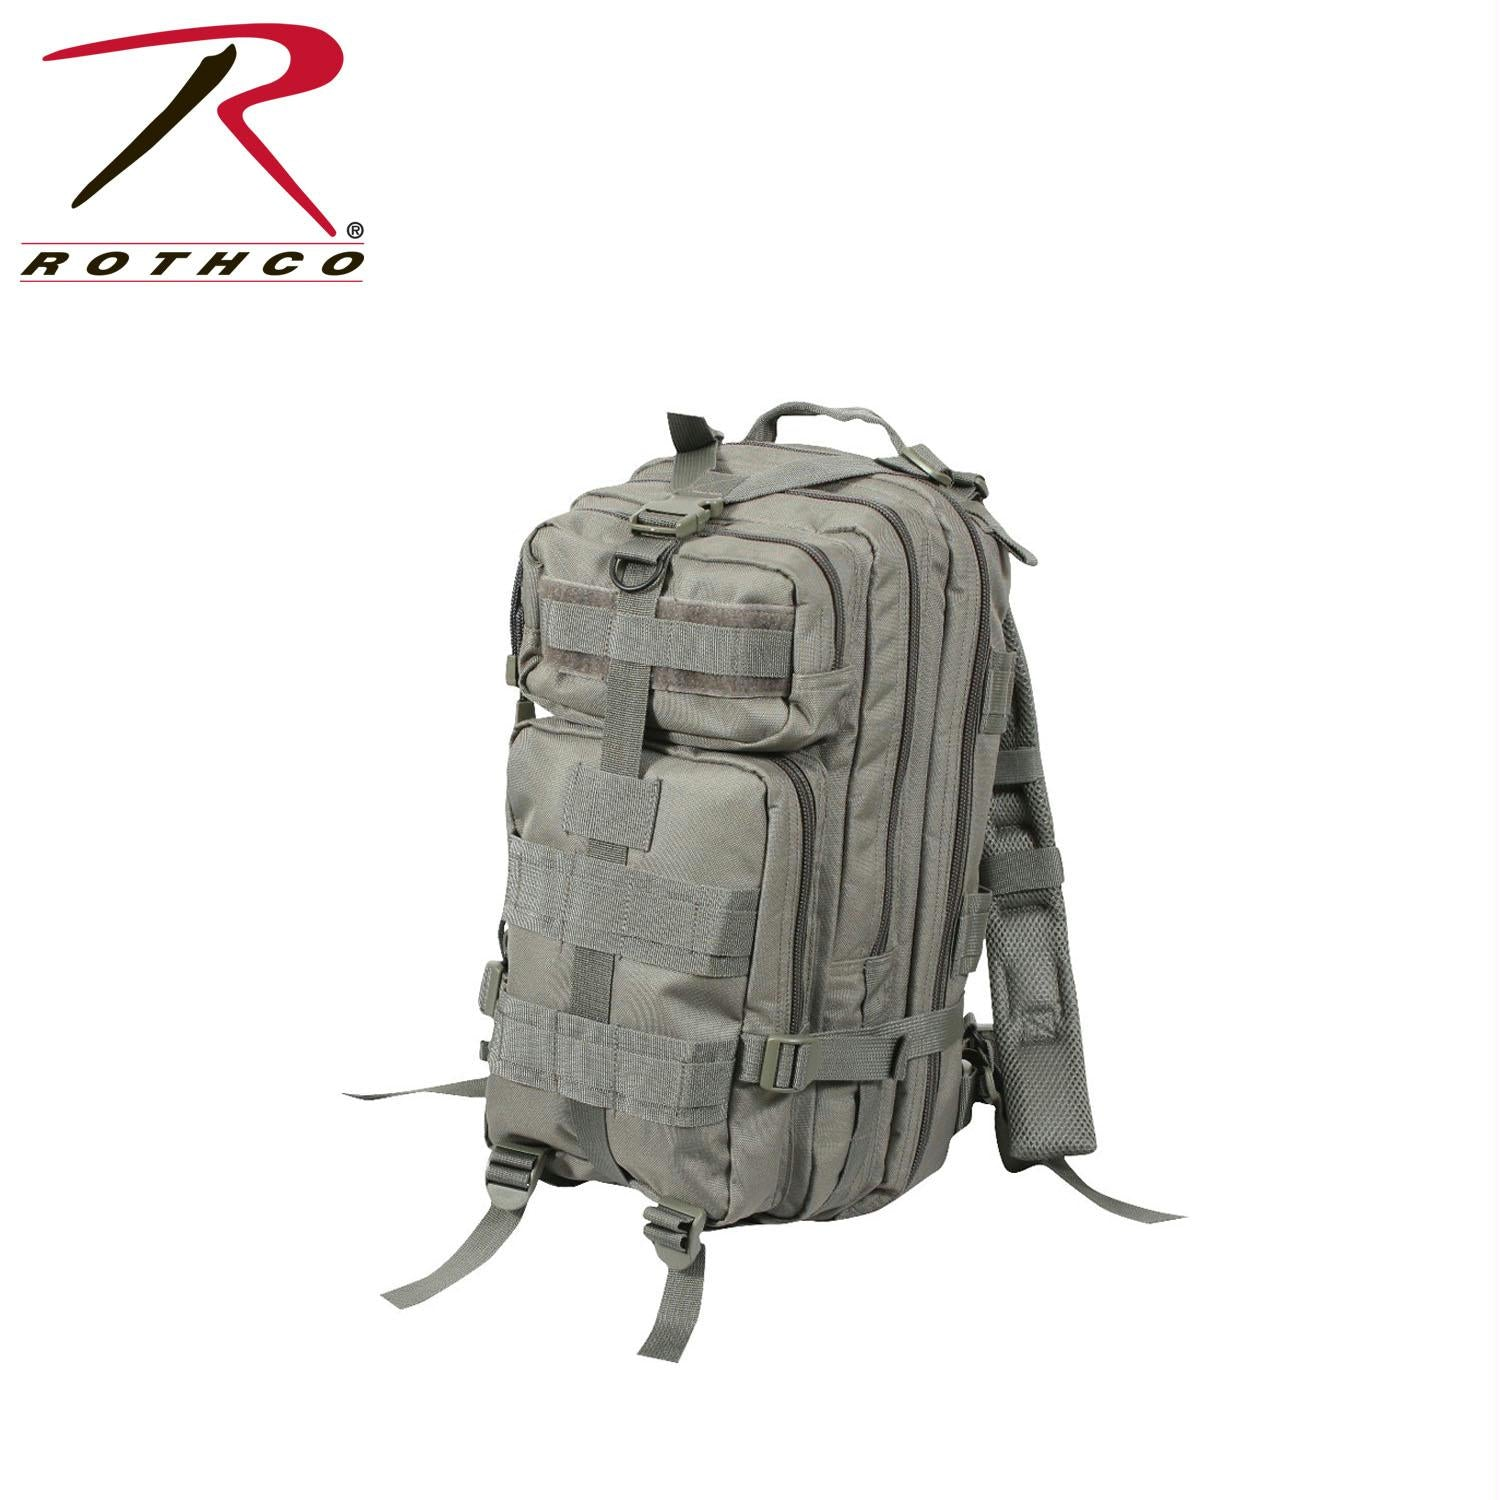 Rothco Medium Transport Pack - Foliage Green